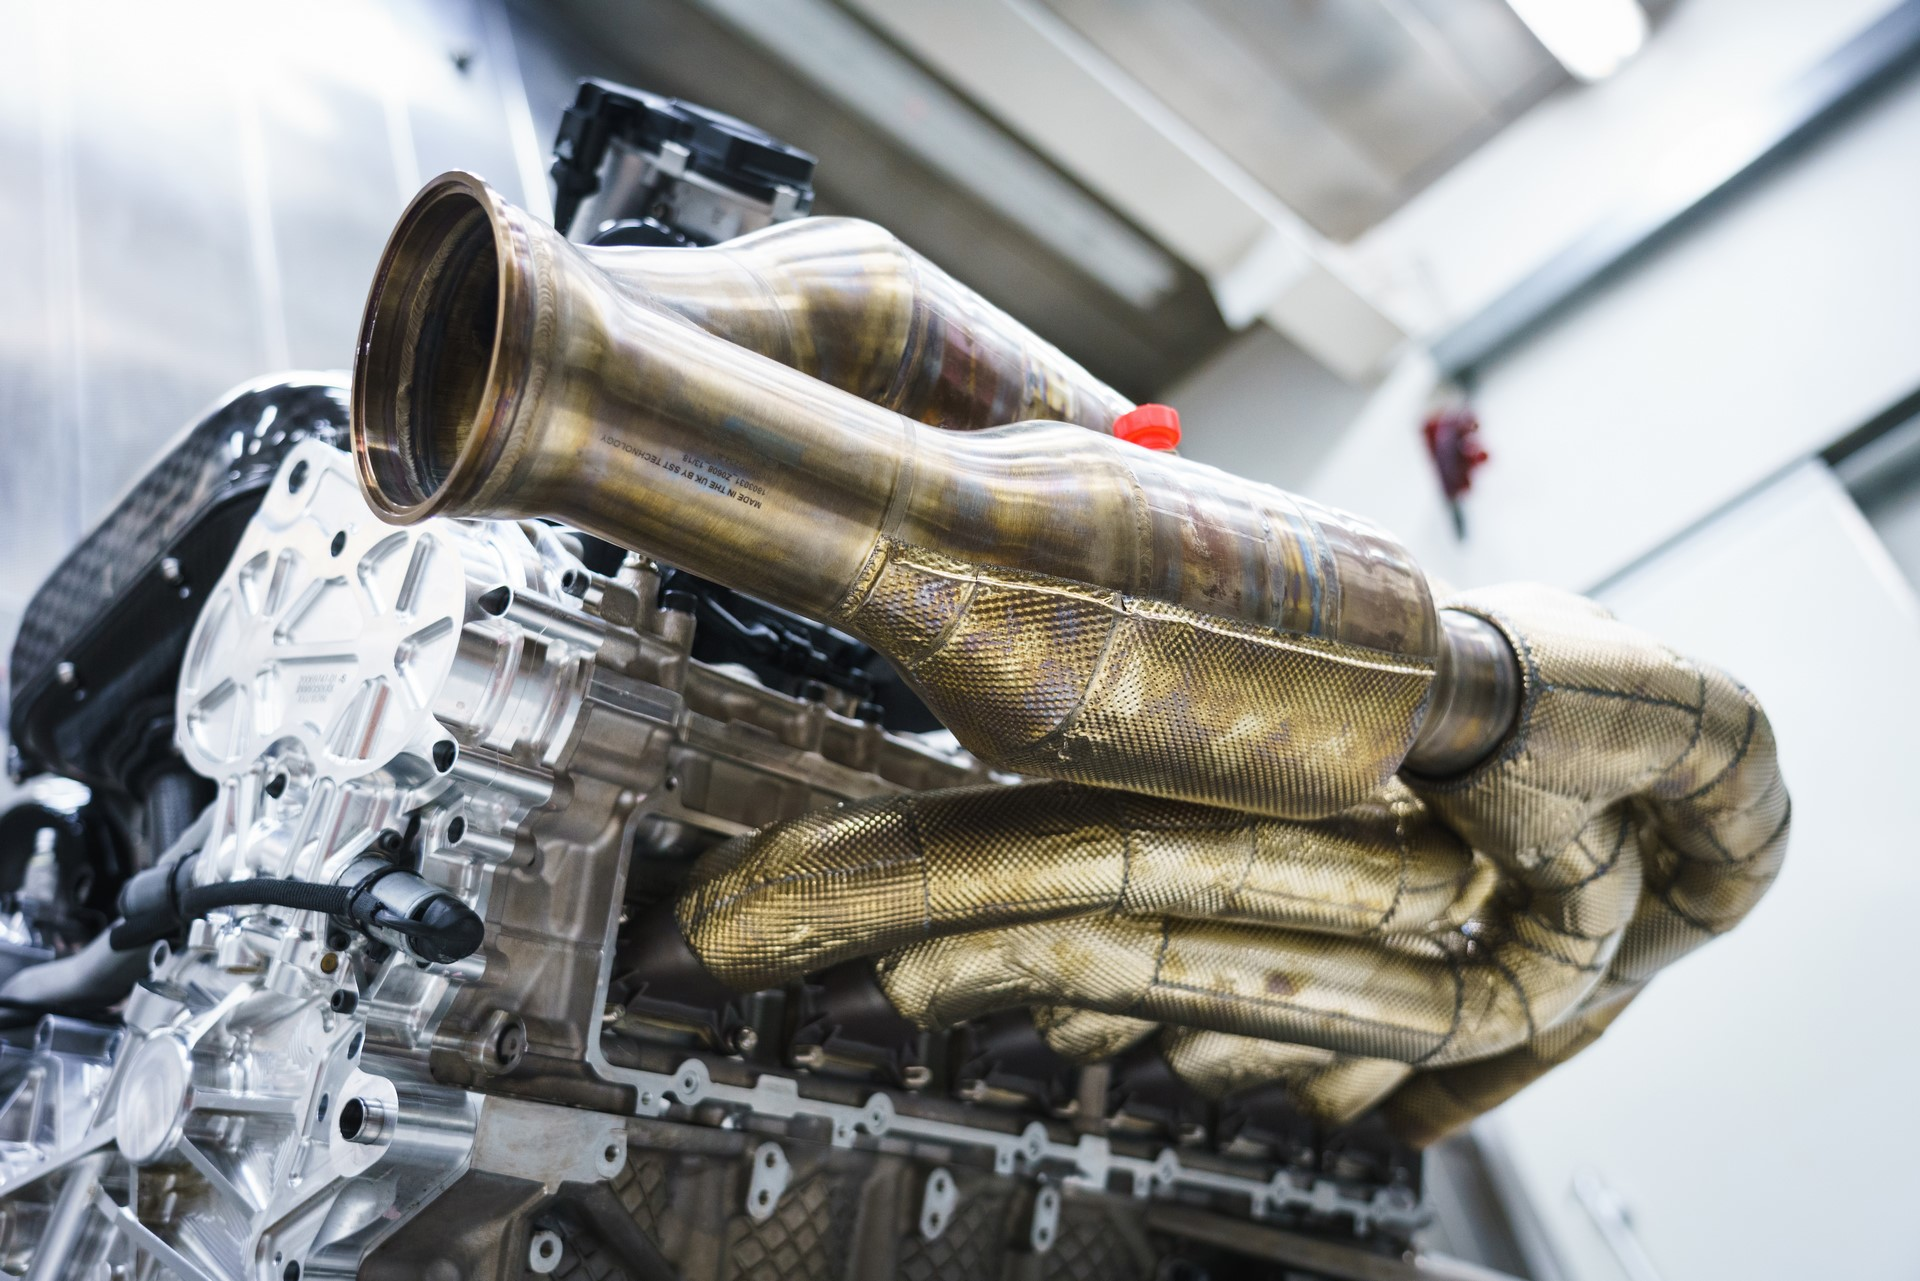 Aston Martin Valkyrie Engine (13)